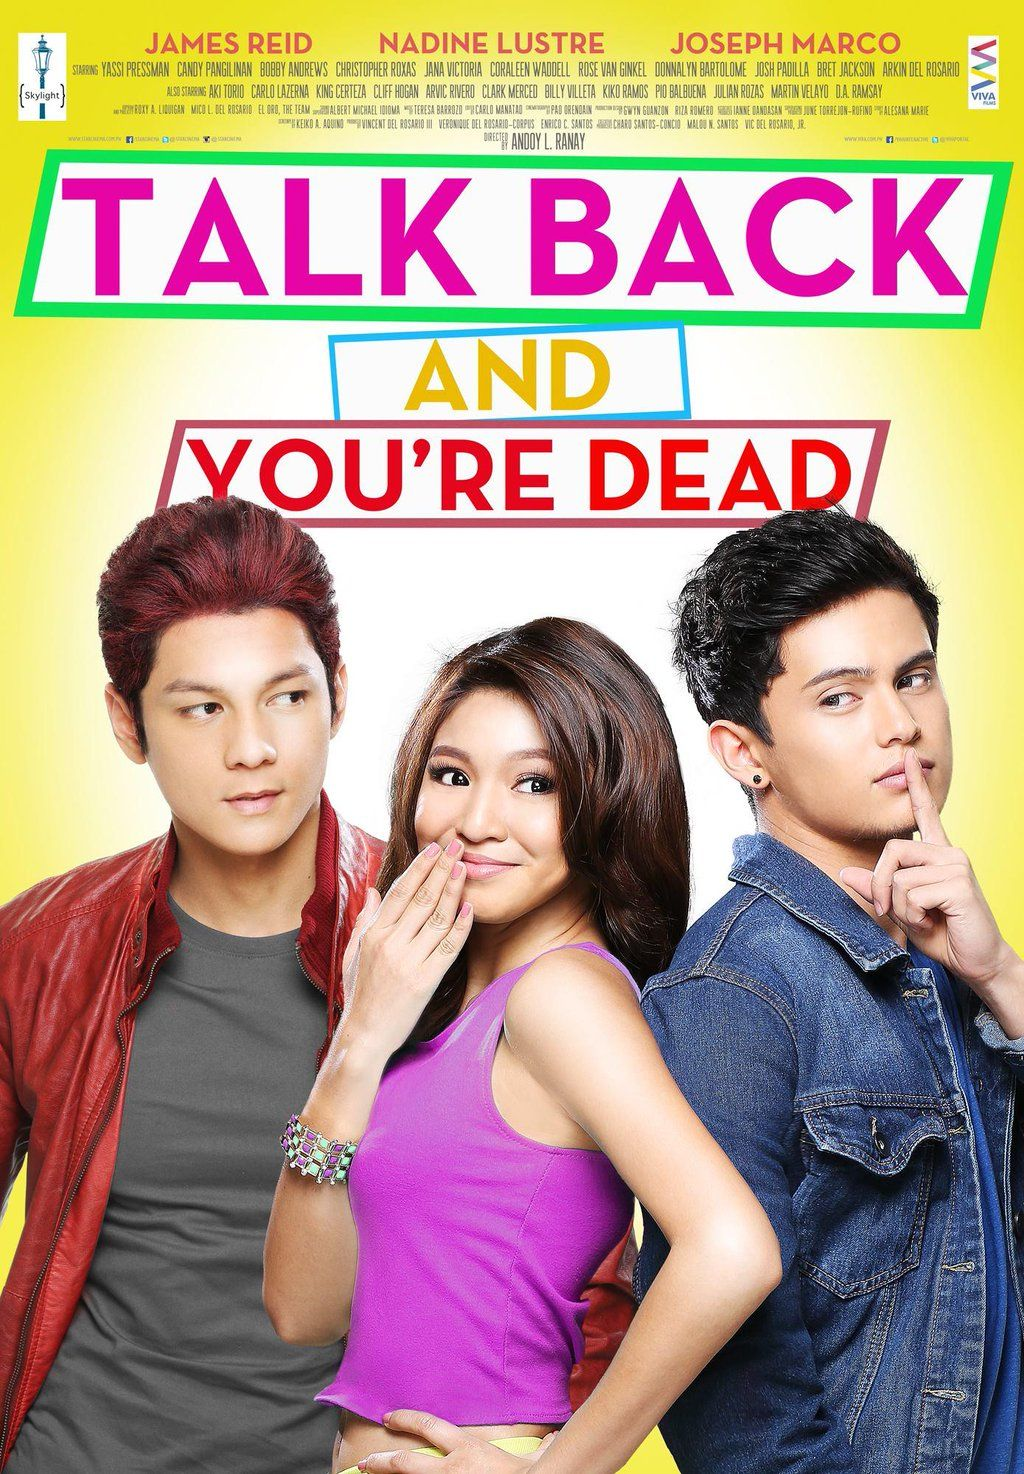 Talk Back And You Re Dead 2014 Starring James Reid Nadine Lustre Joseph Marco Pinoy Movies Talking Back You Re Dead